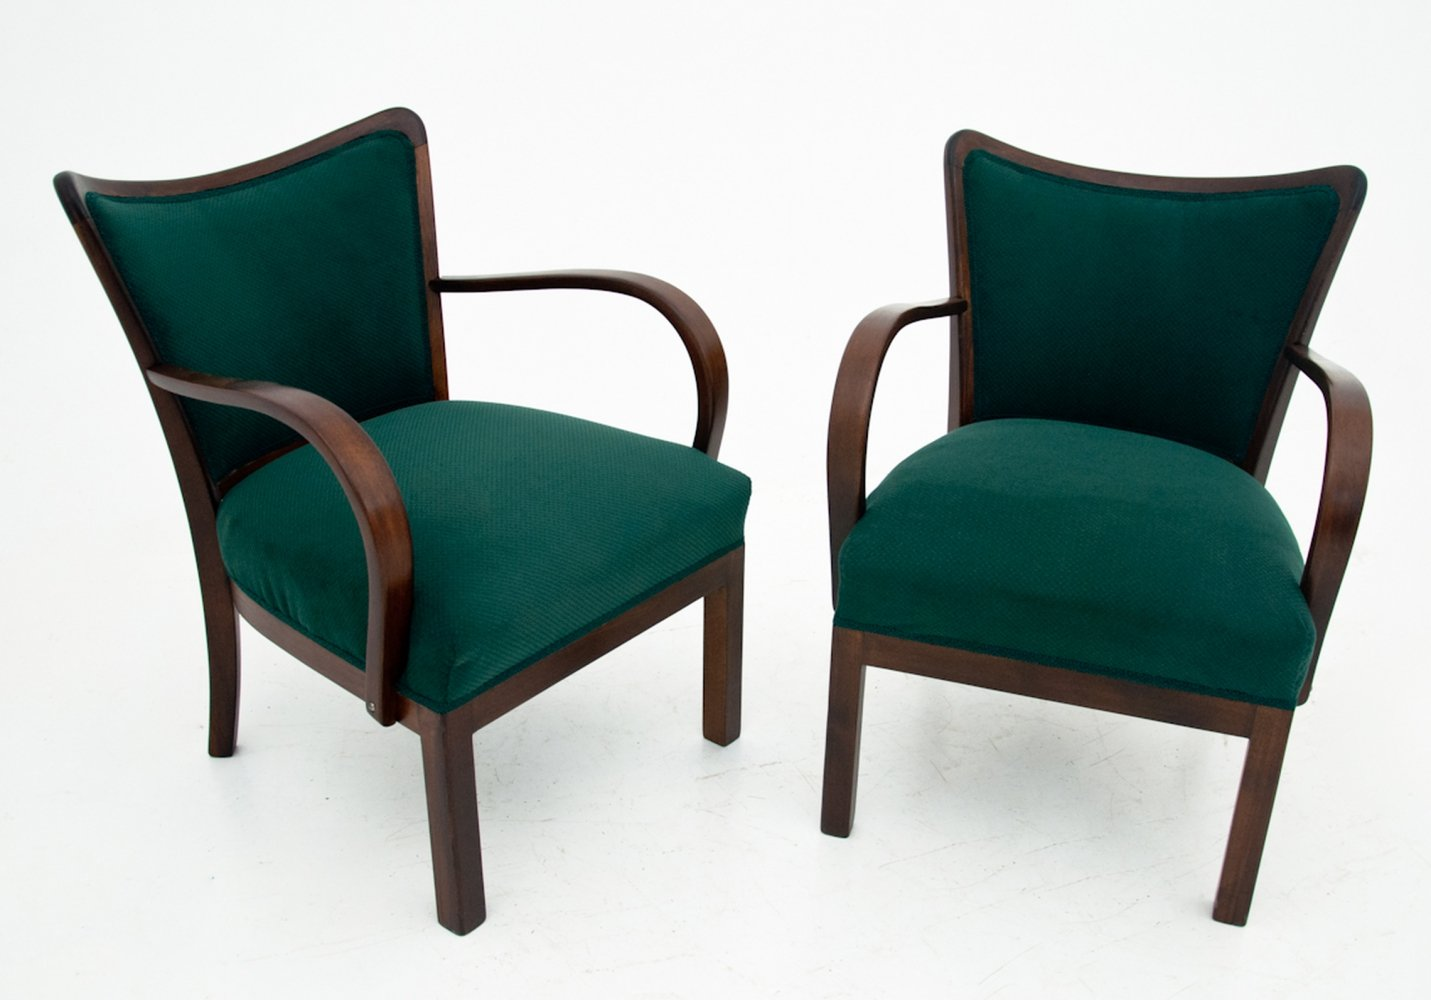 Two green art deco armchairs, 1950s